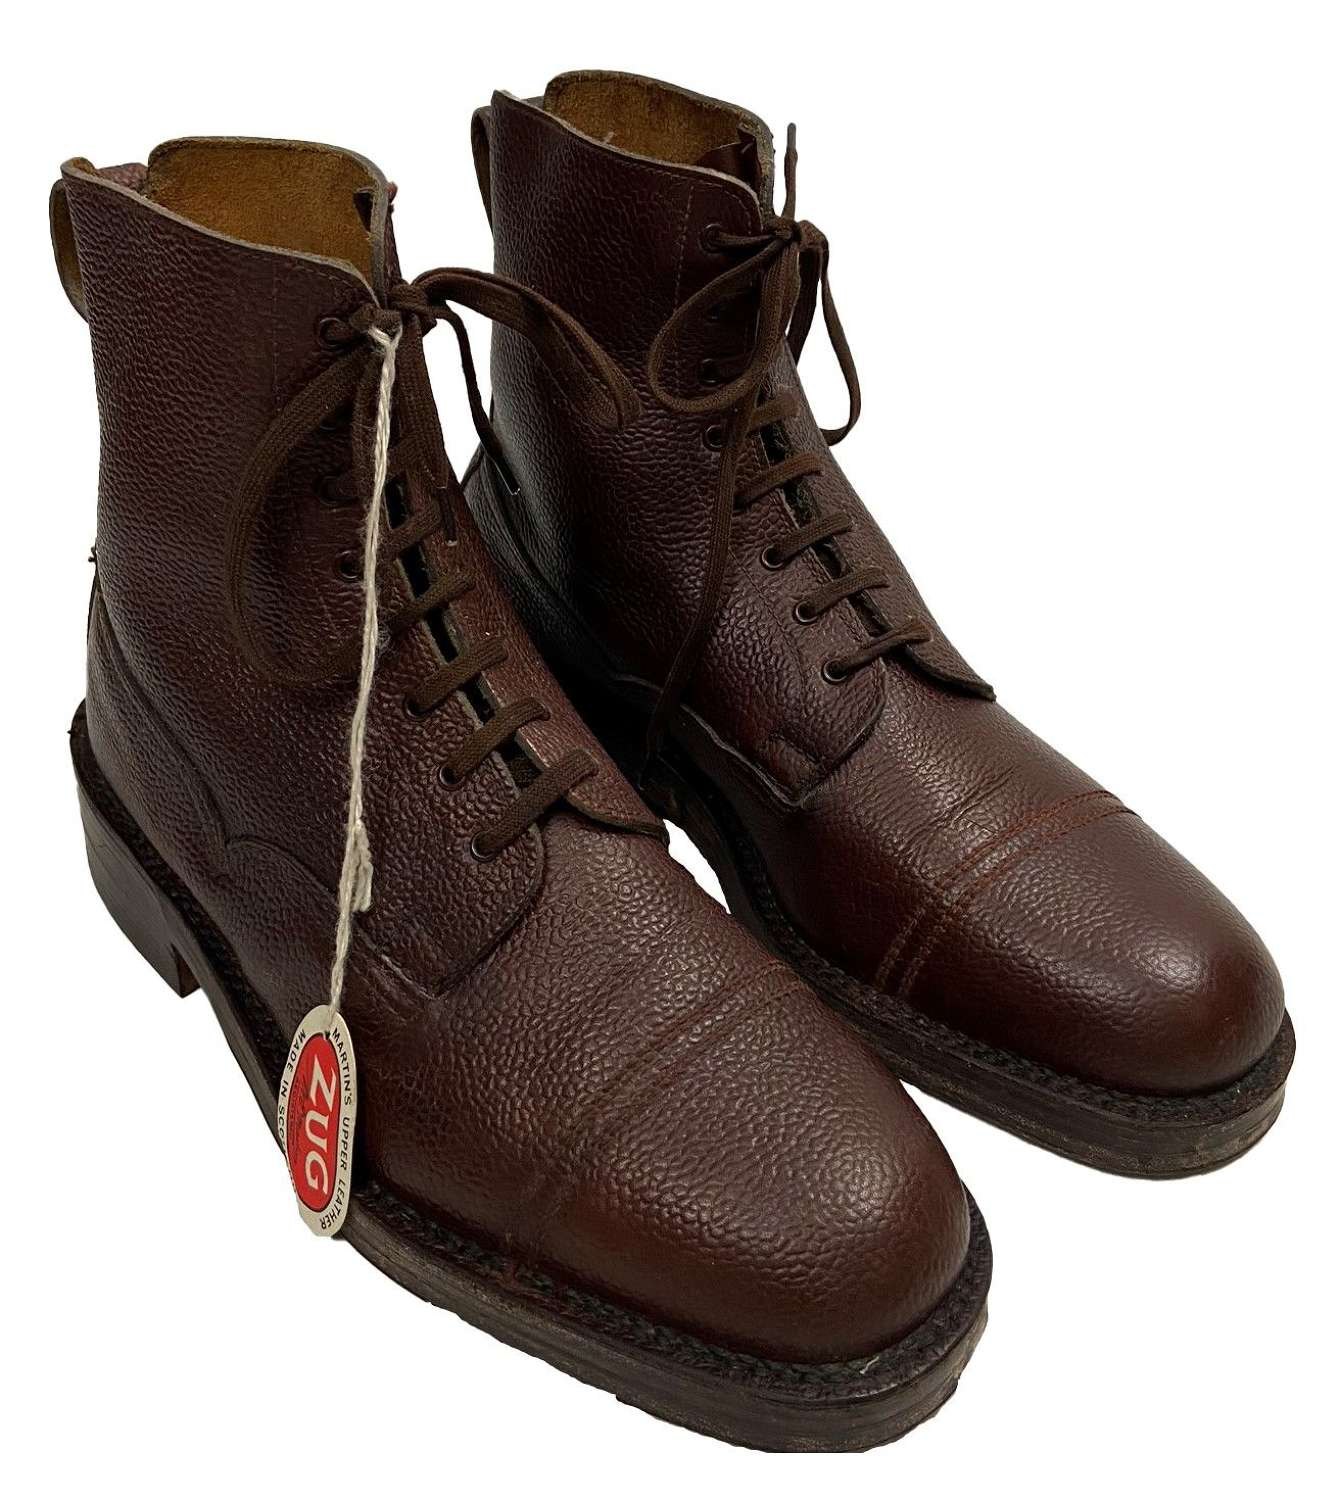 Original 1950s Veldtschoen Brown Leather Ankle Boots by 'George Webb'